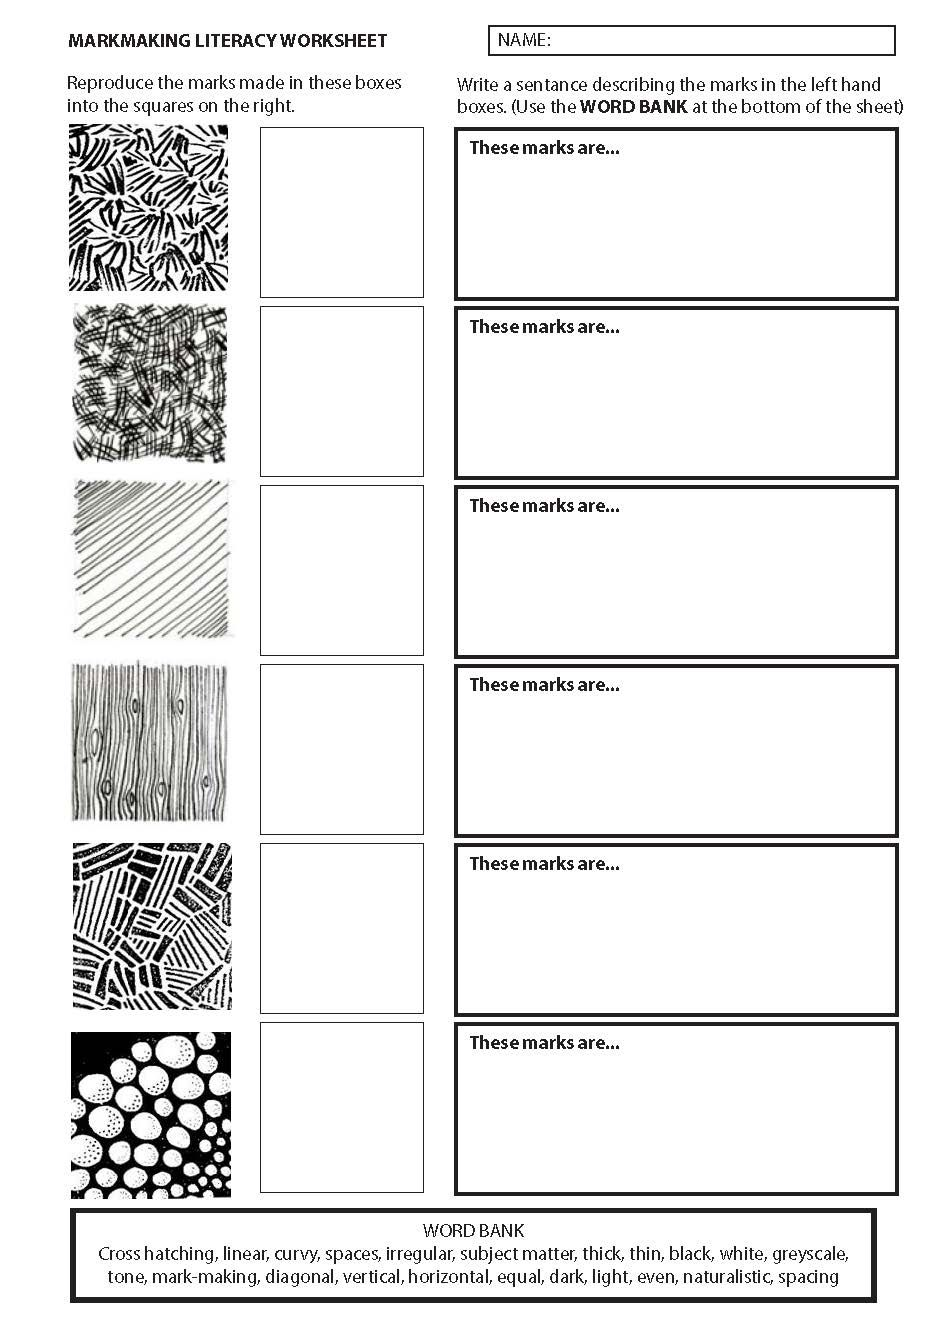 Markmaking literacy work sheet in 2019 | Literacy worksheets ...